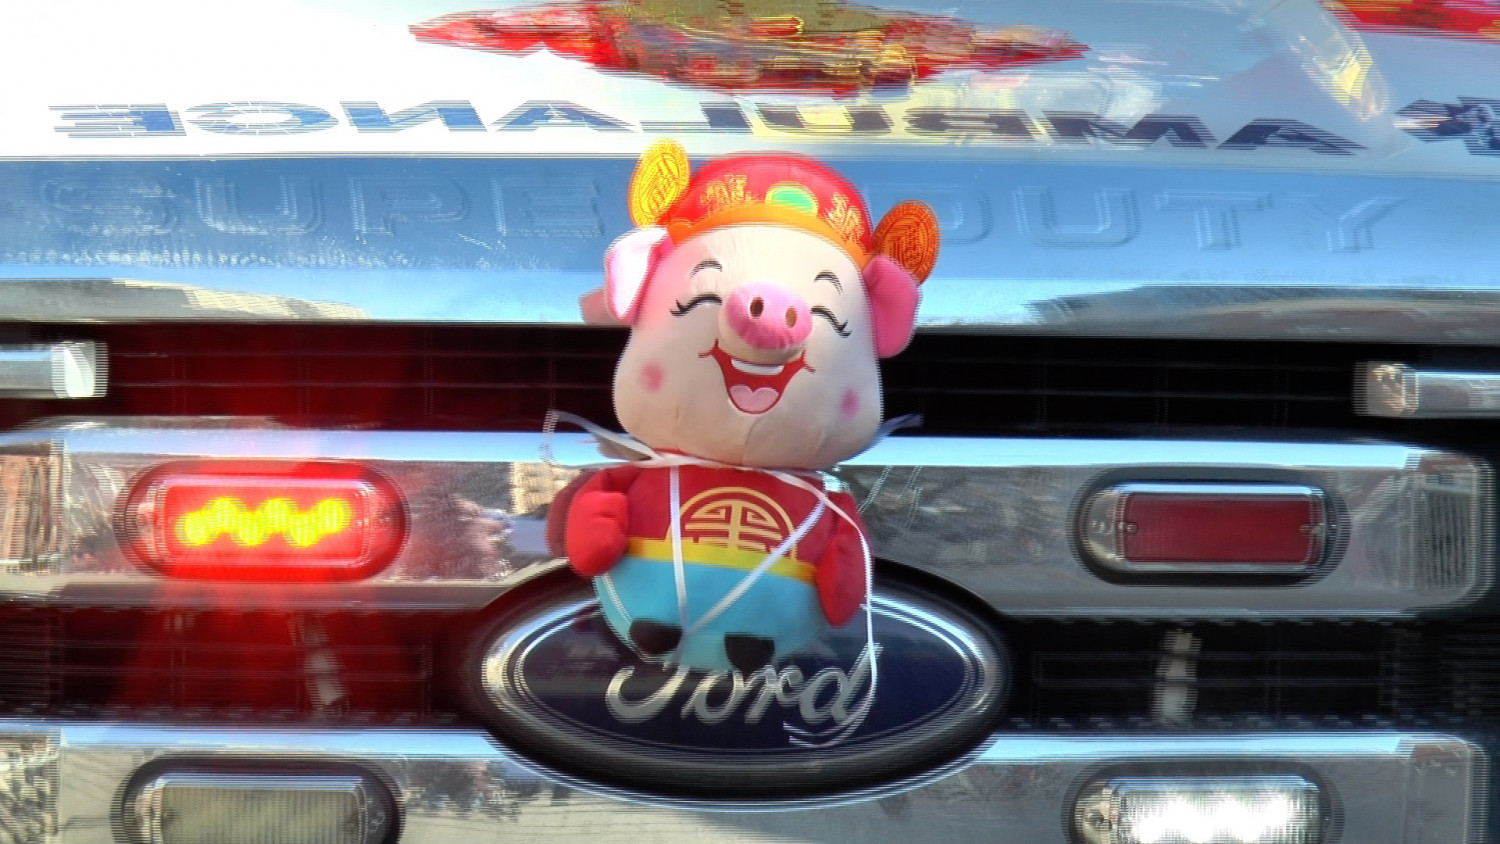 Stuffed pig on Ford bumper in Lunar New Year parade in Flushing.